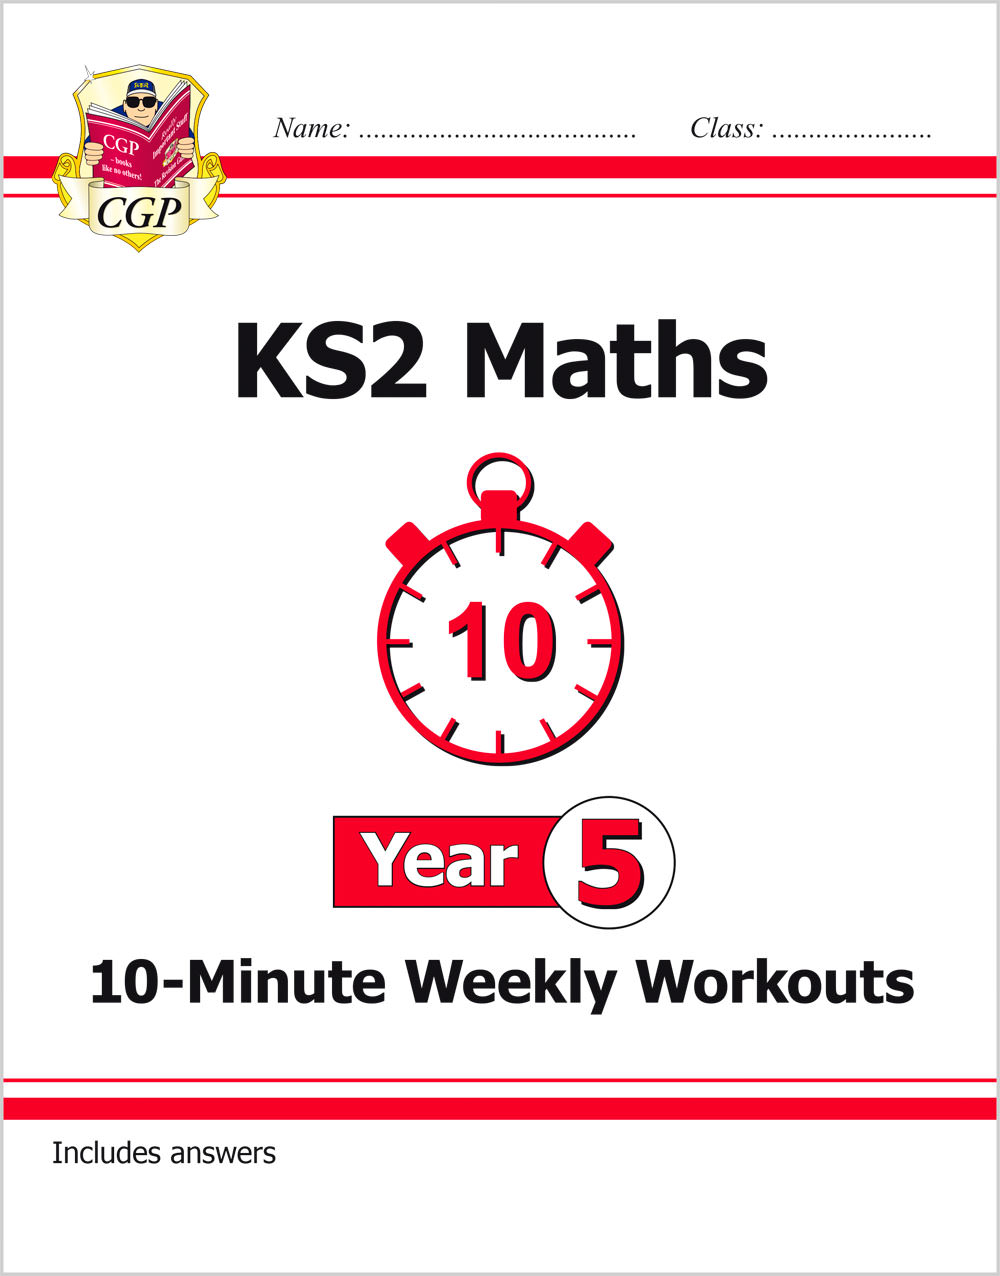 M5XW21 - KS2 Maths 10-Minute Weekly Workouts - Year 5